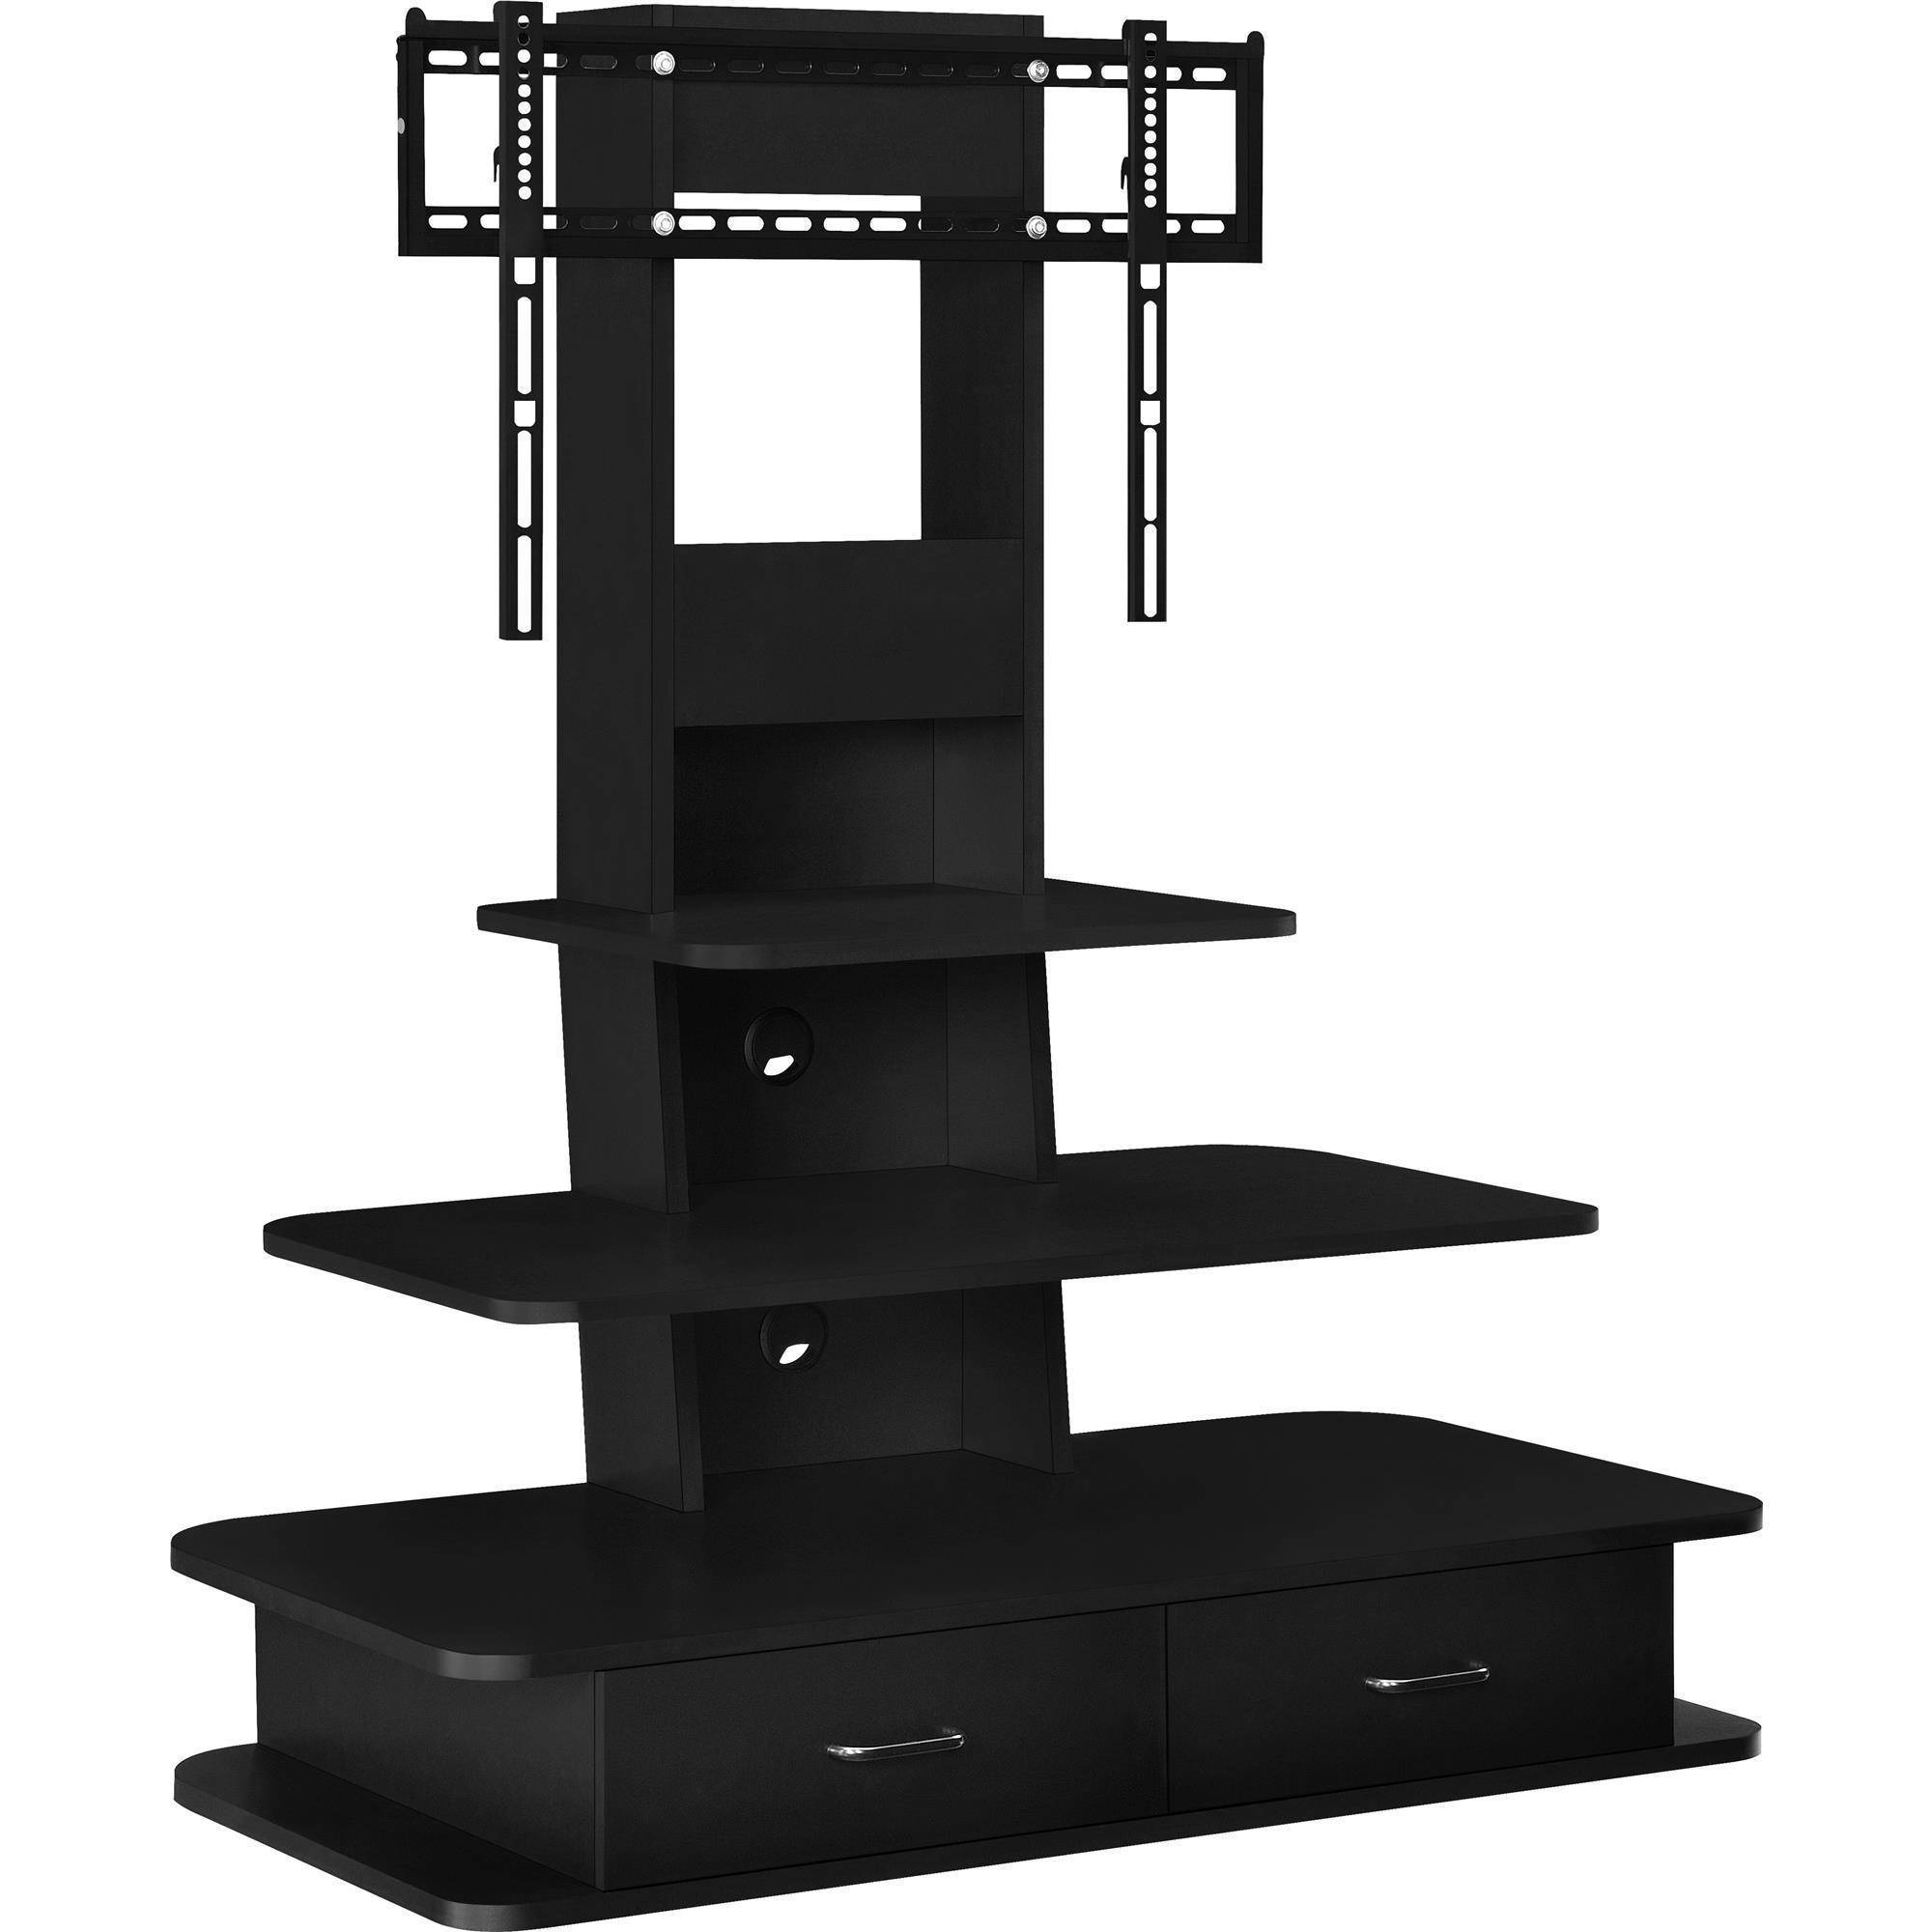 large entertainment center corner 65 inch tall 70 tv stand 55 best heavy dut ebay. Black Bedroom Furniture Sets. Home Design Ideas